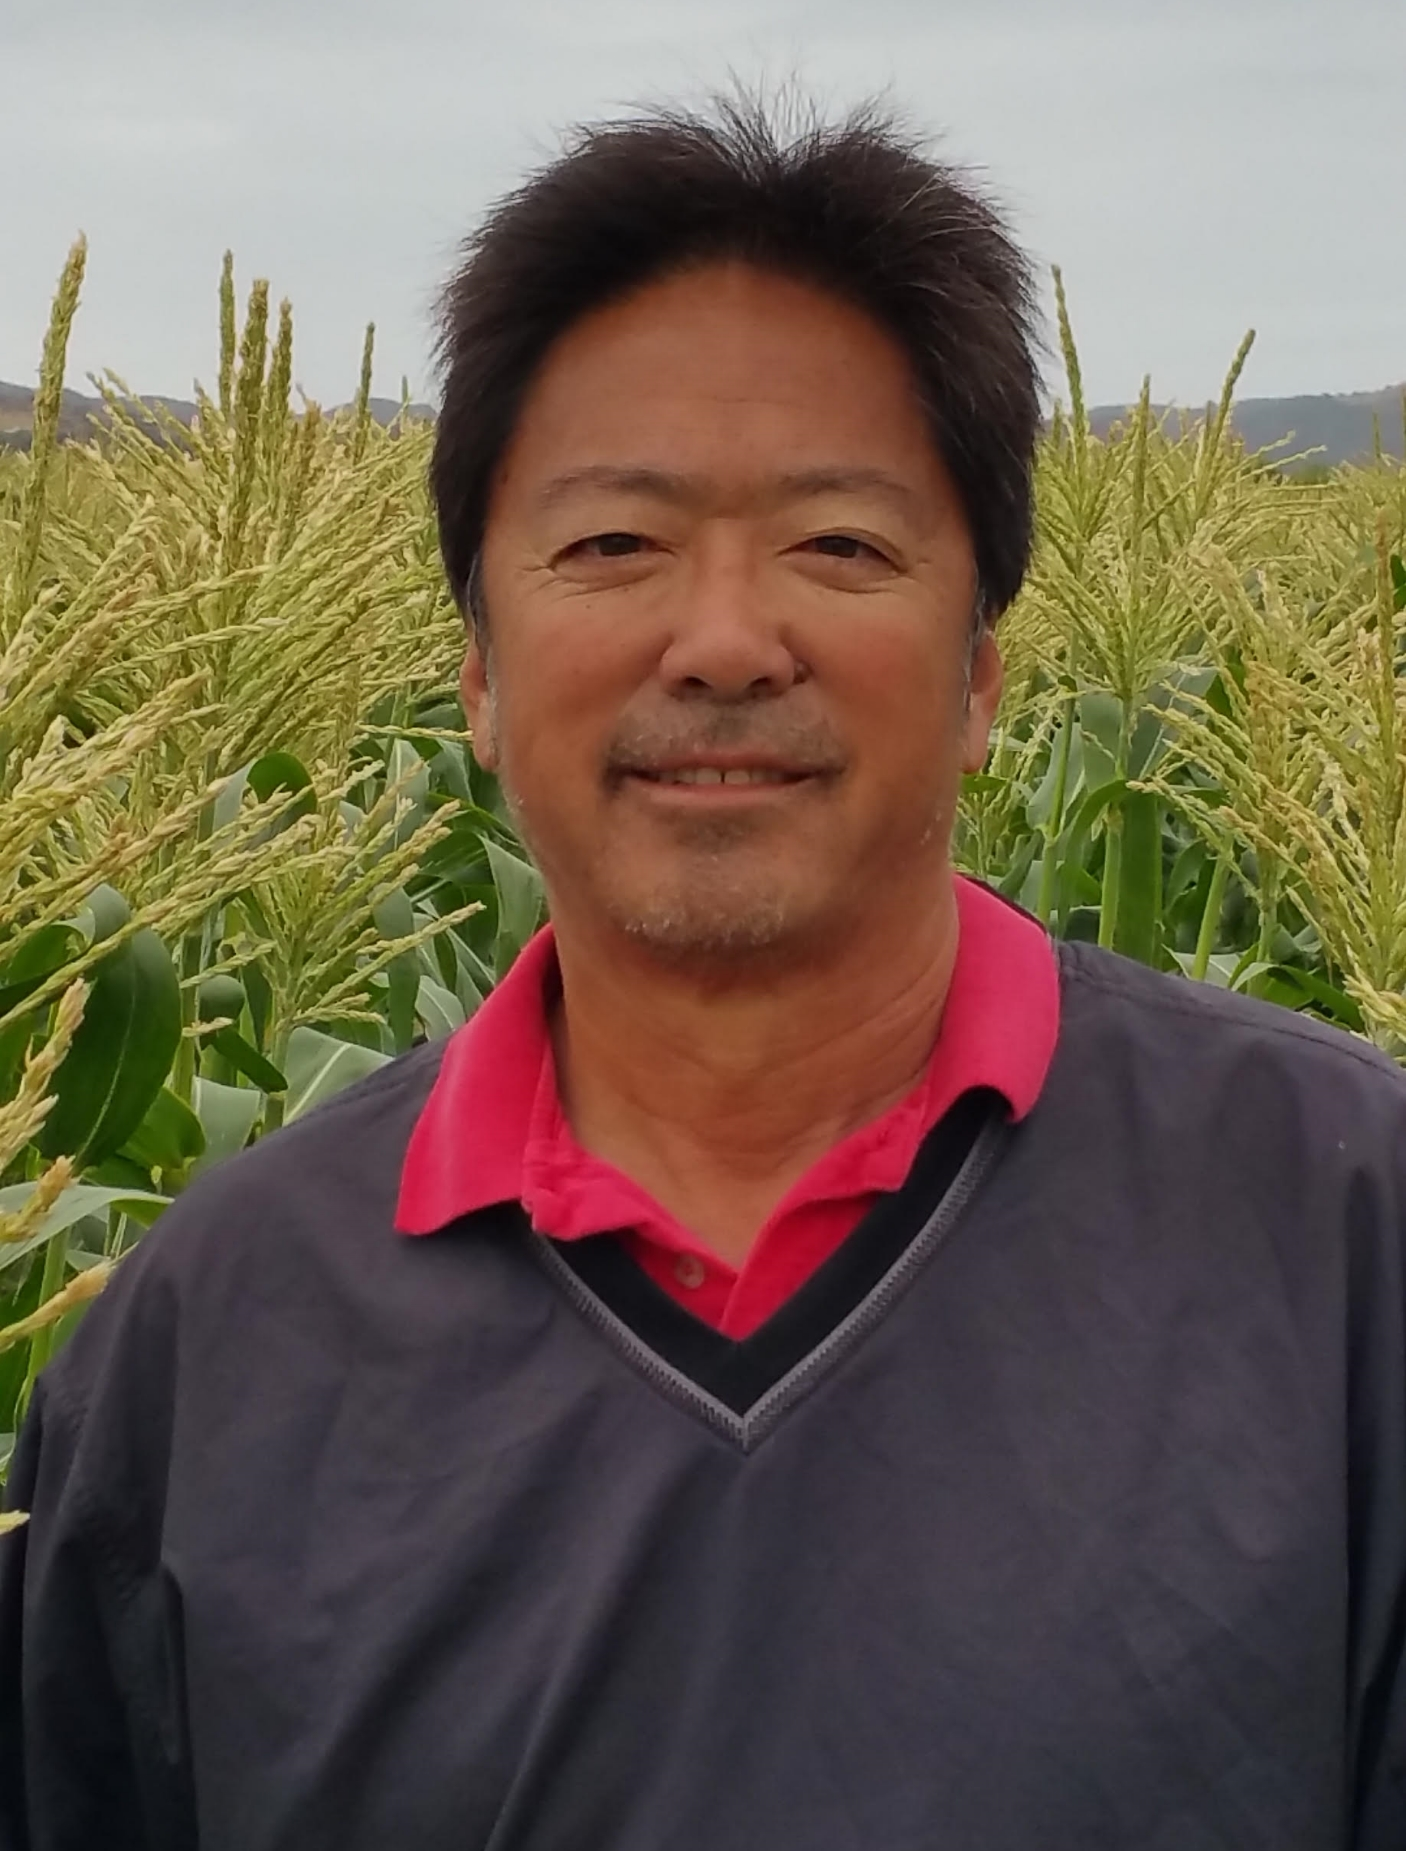 Glenn Tanaka is the owner of Tanaka Farms. FarmerTanaka has been involved in the community through the Orange Coast Optimists Club as well as holding programs at Tanaka Farms such as the Walk the Farm, Tanaka Farms' largest event of the year. Walk the Farm continues to bring together the community to support the farmers affected by the 2011 Tohoku earthquake and tsunami.